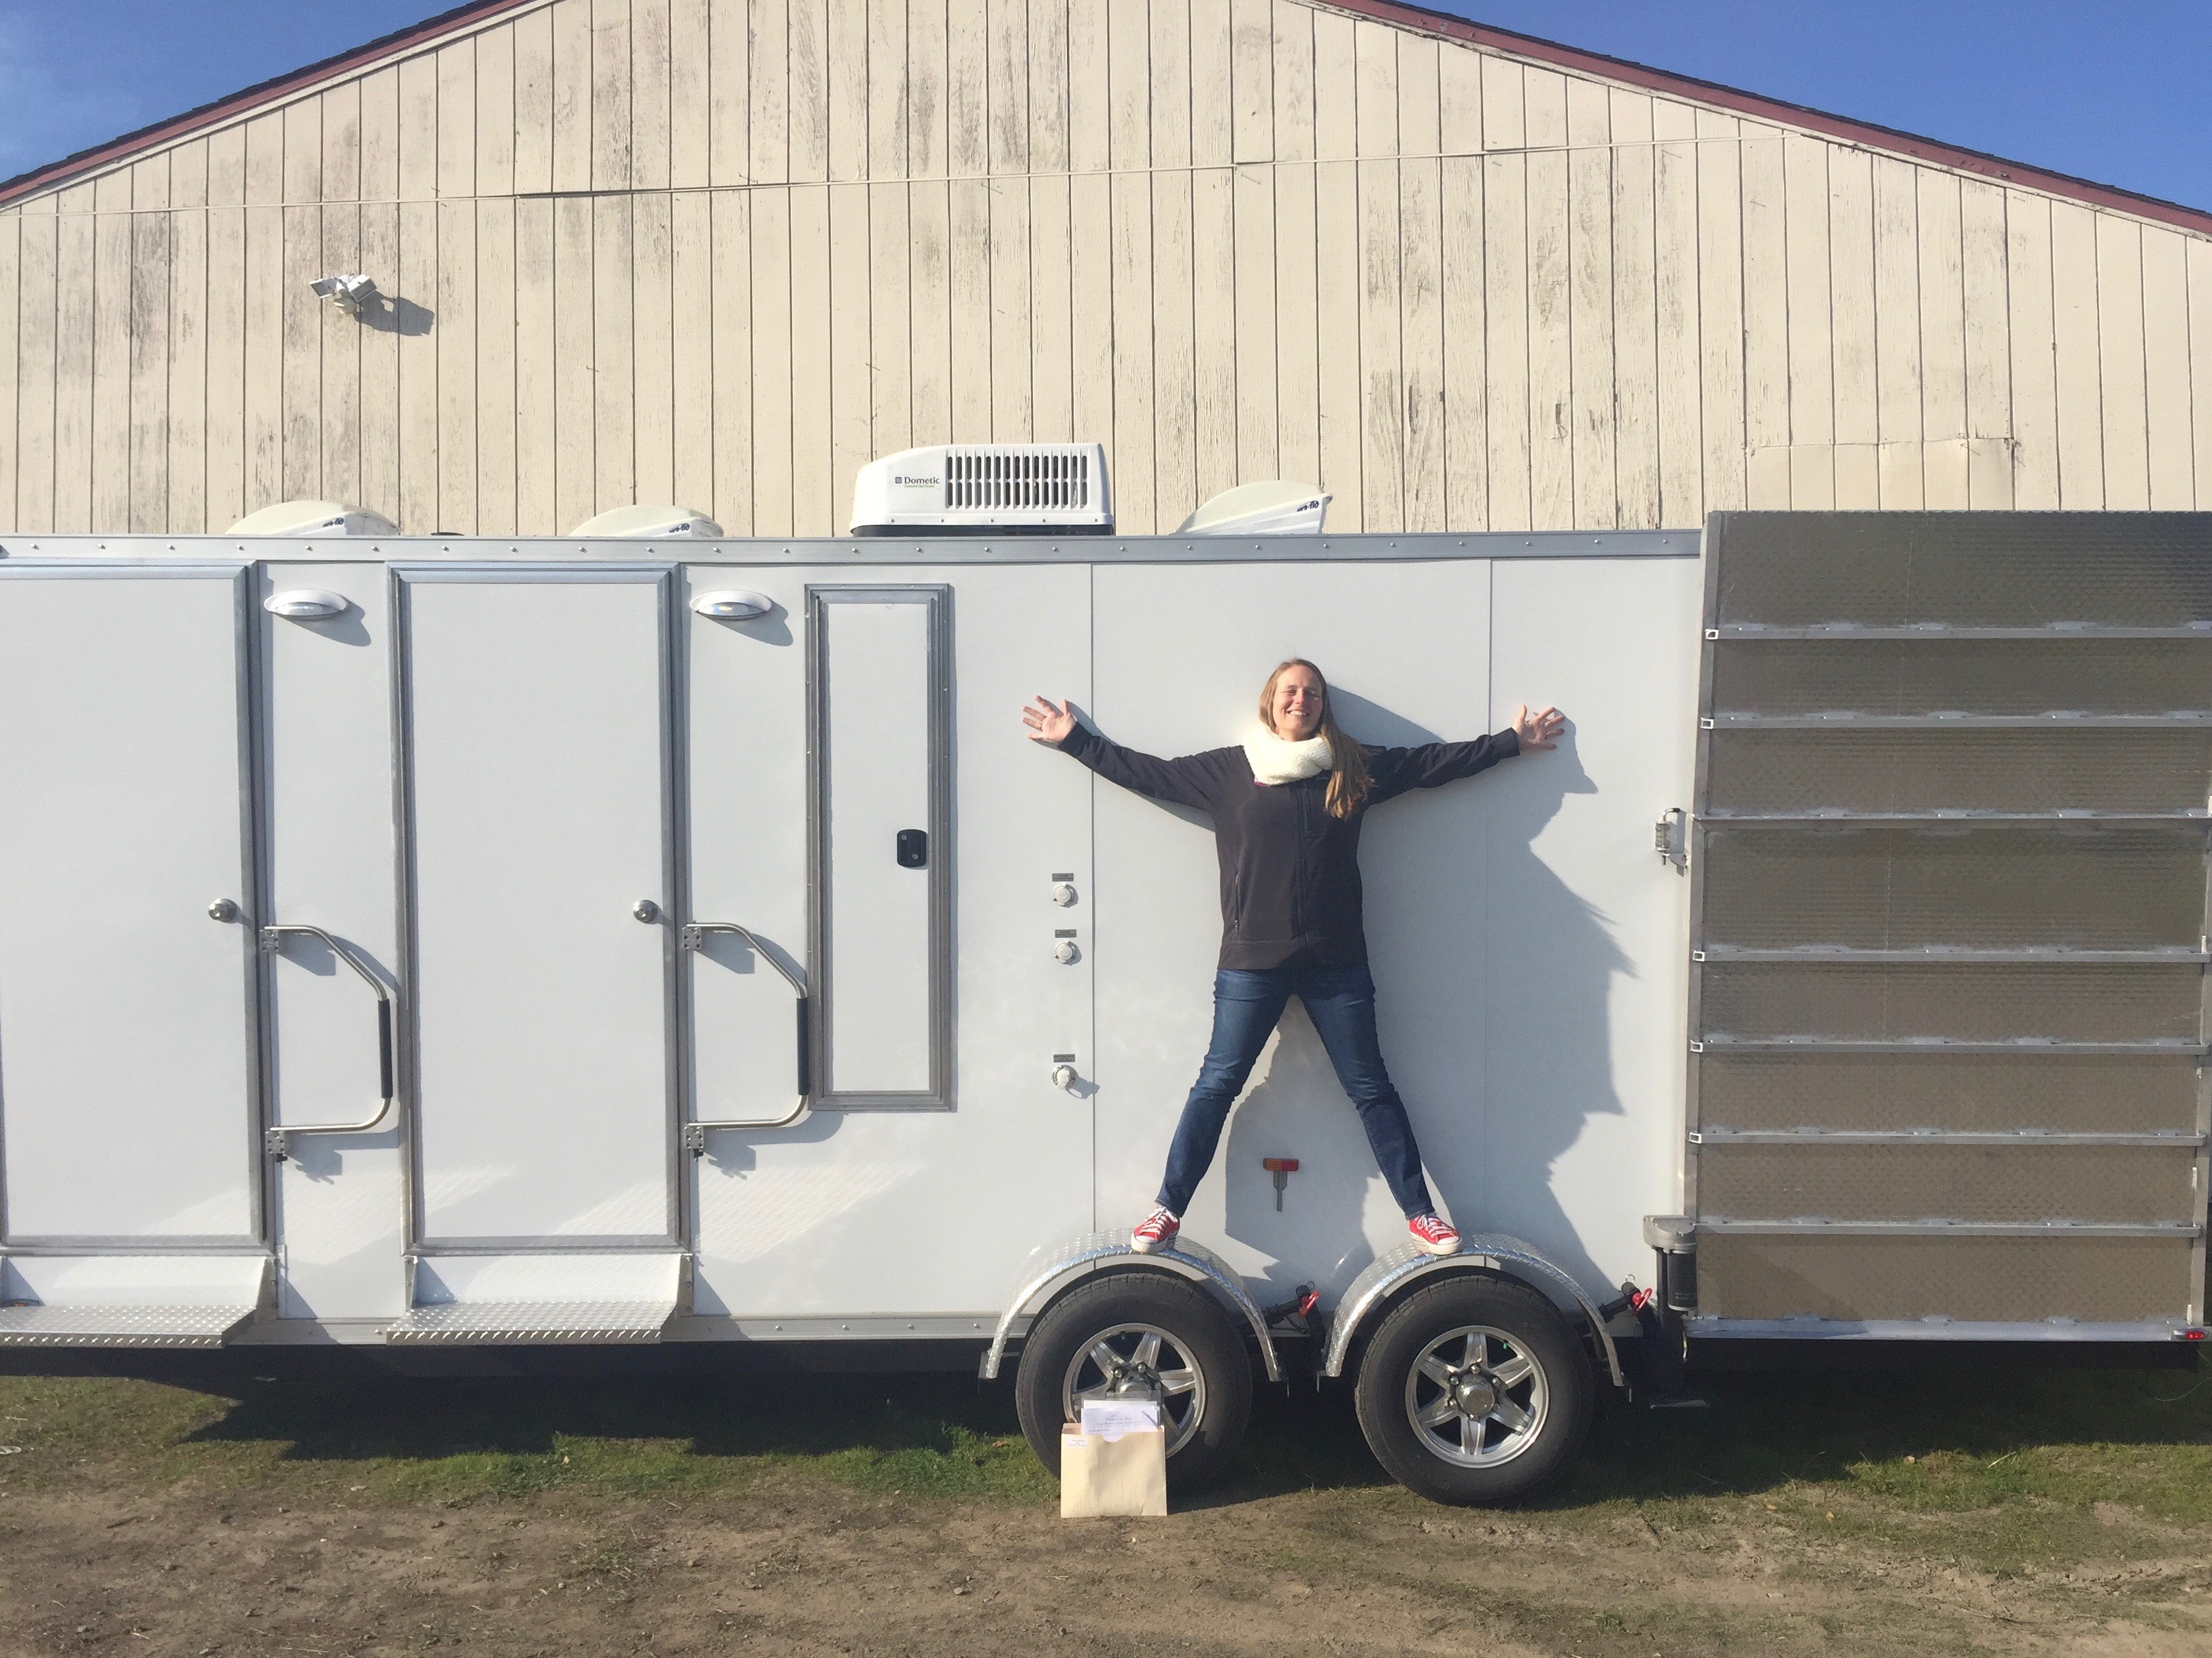 The mobile shower units have arrived!